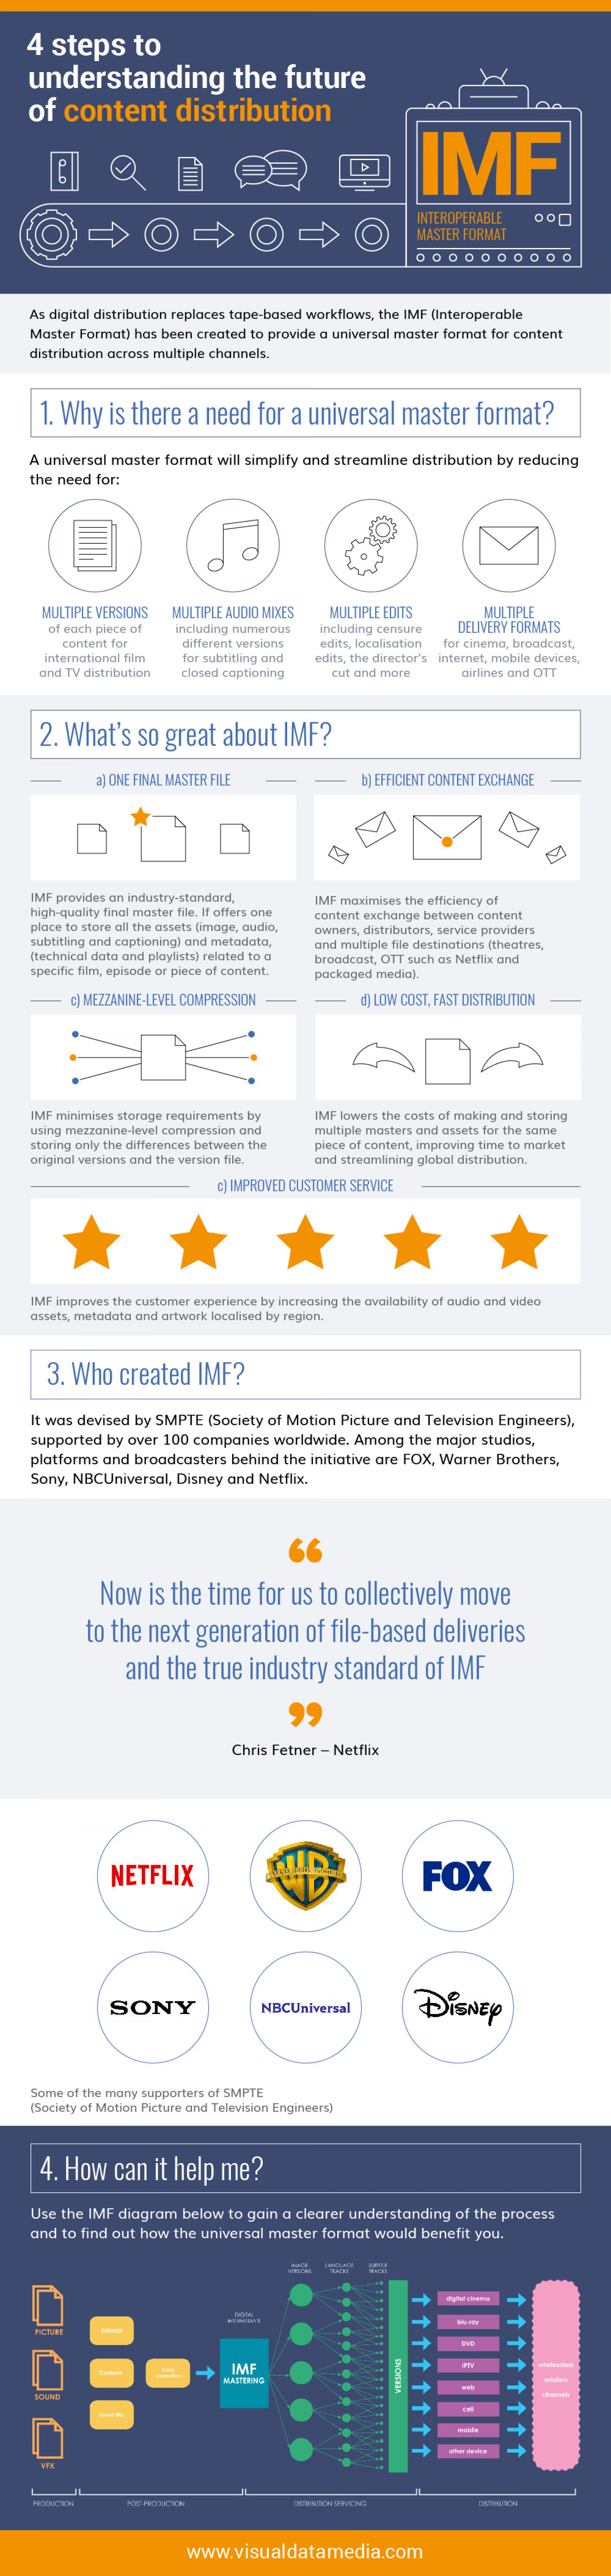 4 Steps to Understanding the Future of Content Distribution Infographic